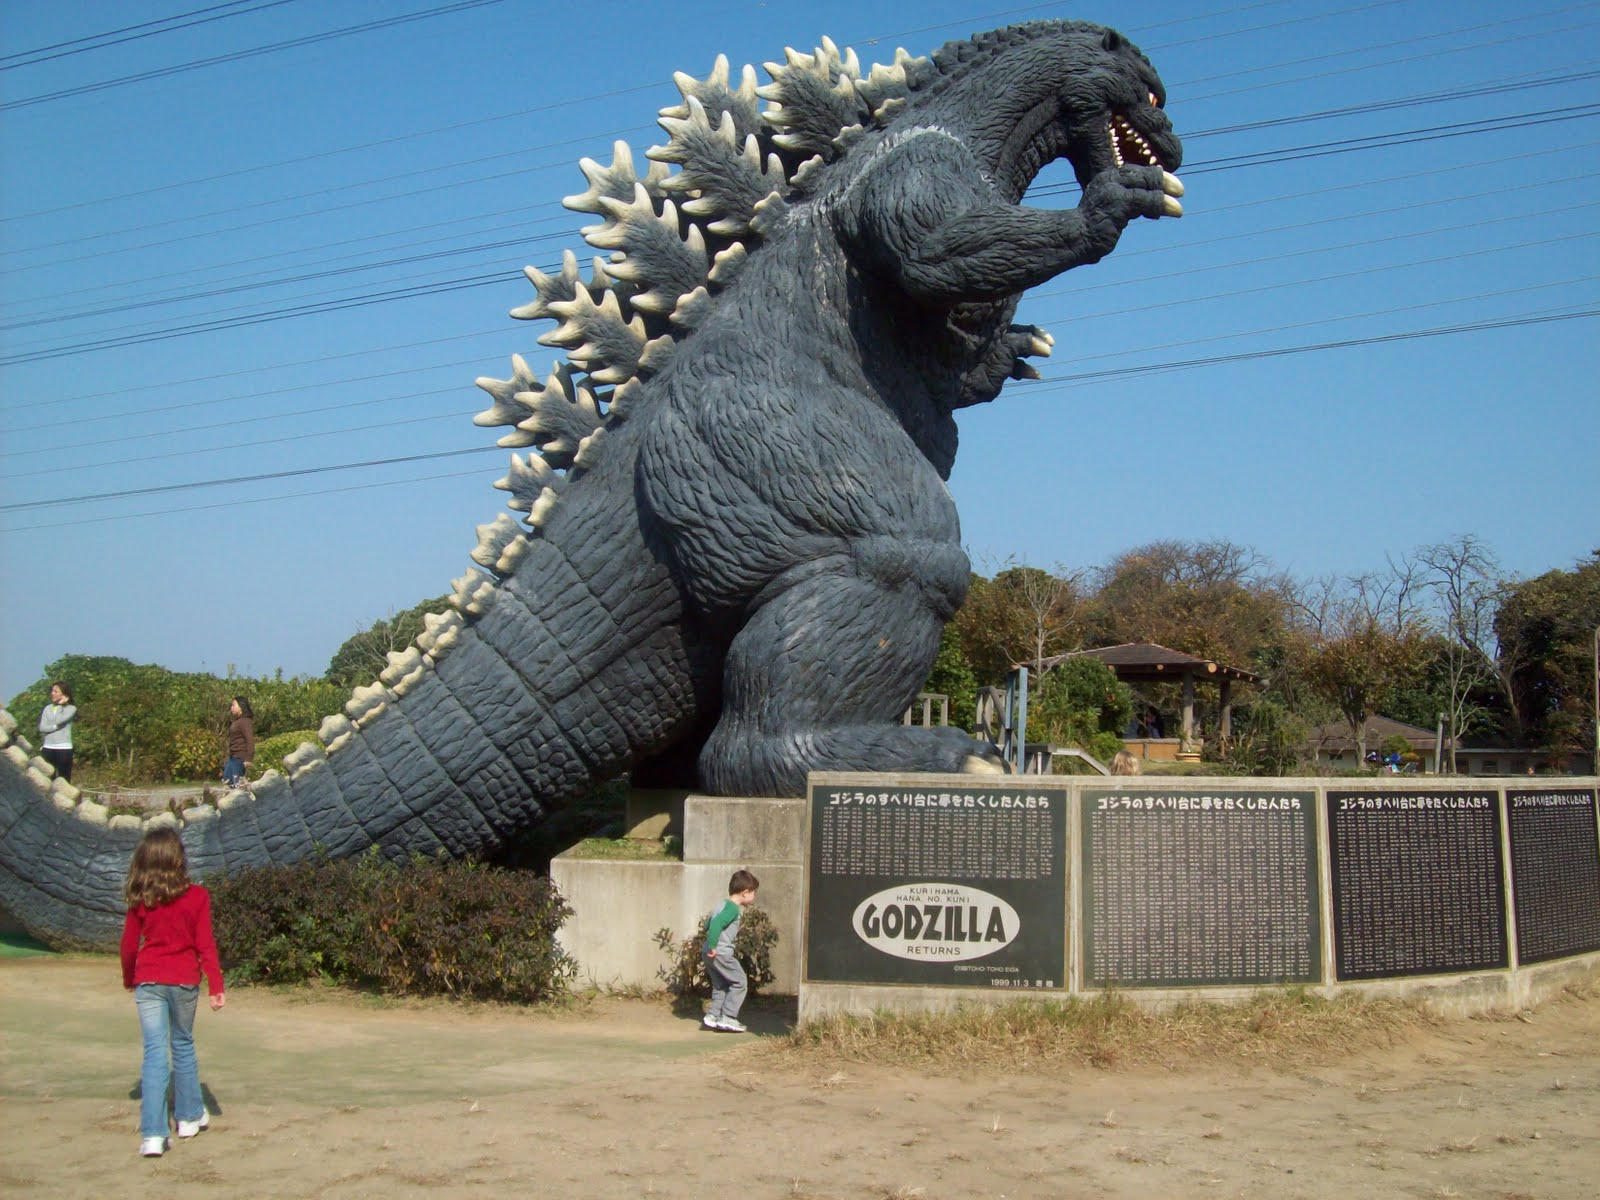 Dizionario del Turismo Cinematografico: GODZILLA Park